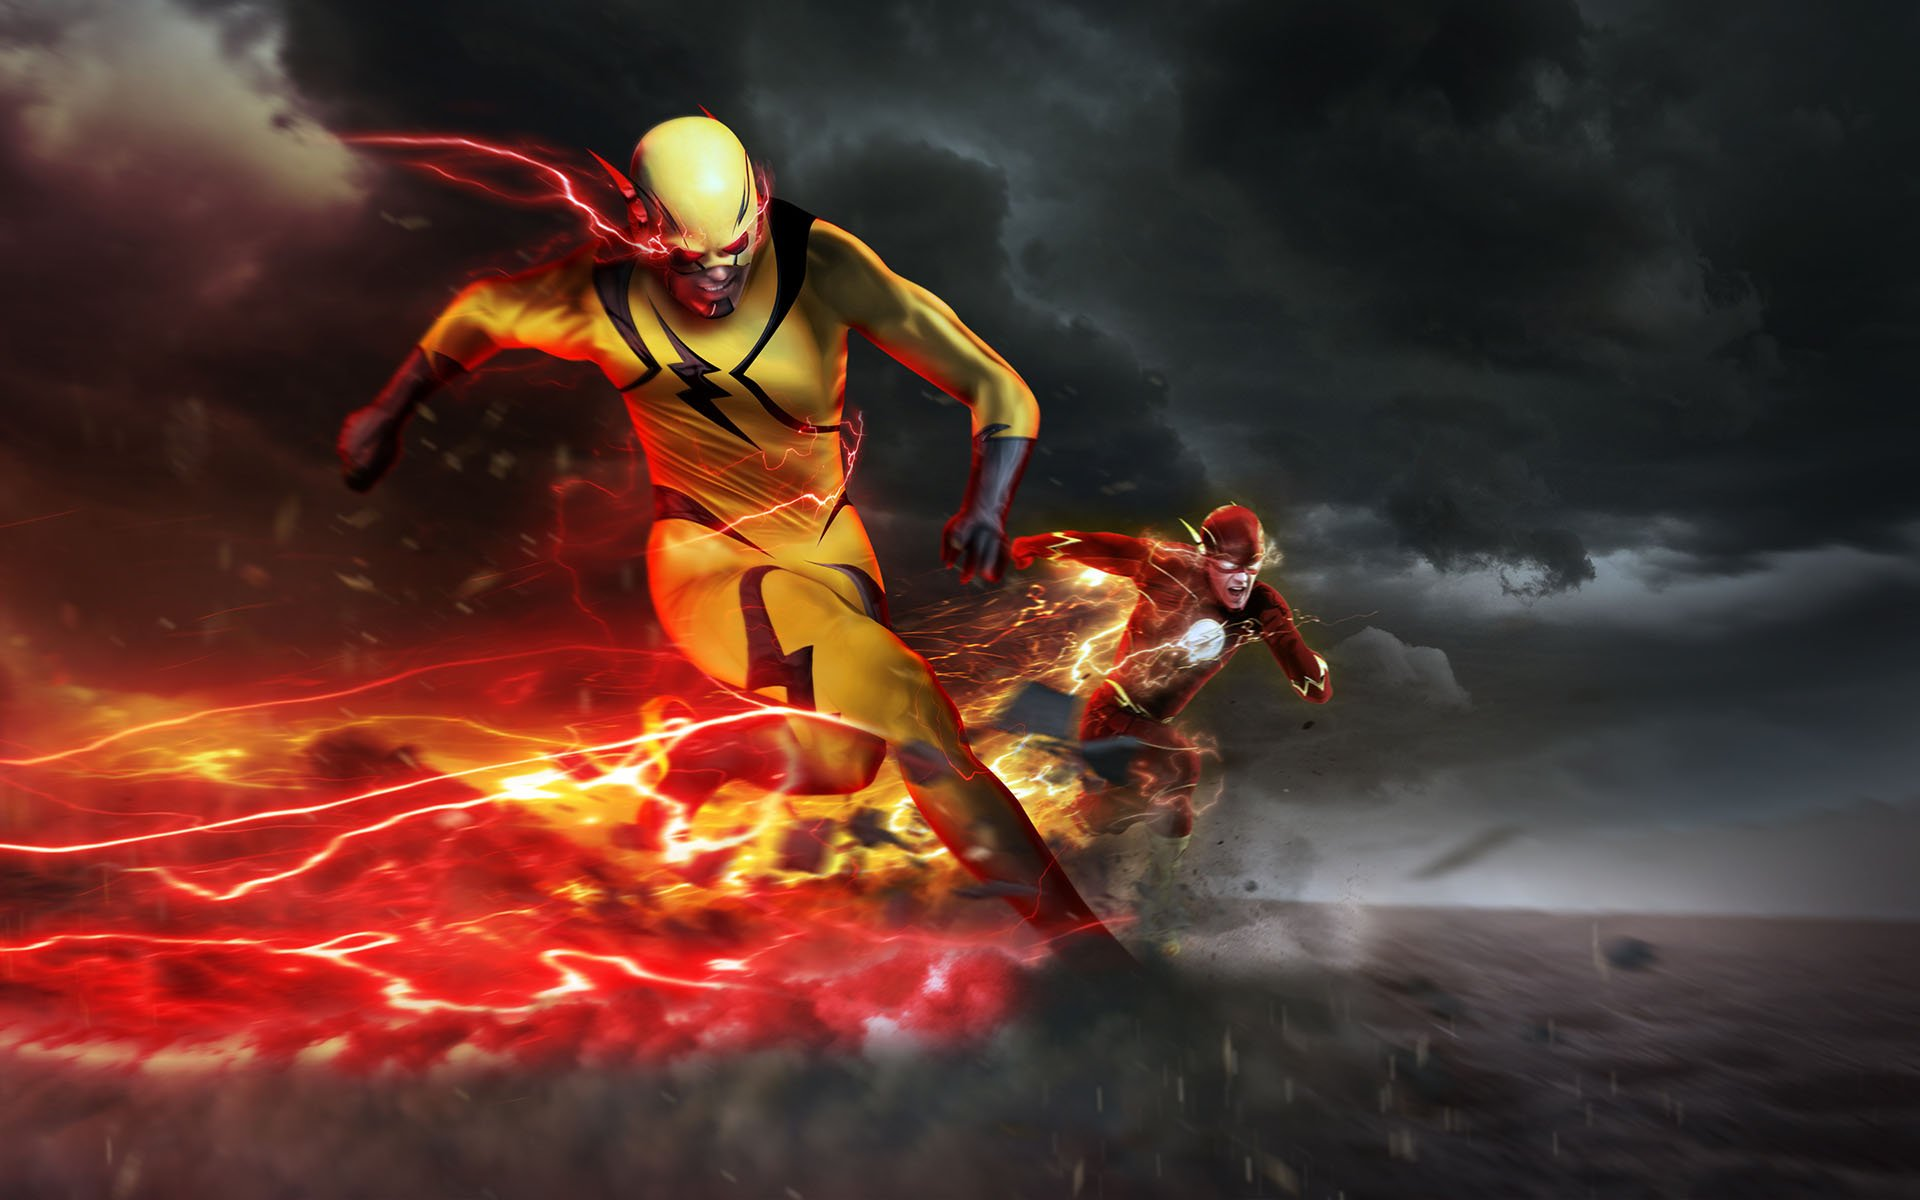 32 Barry Allen the Flash wallpapers HD Download 1920x1200